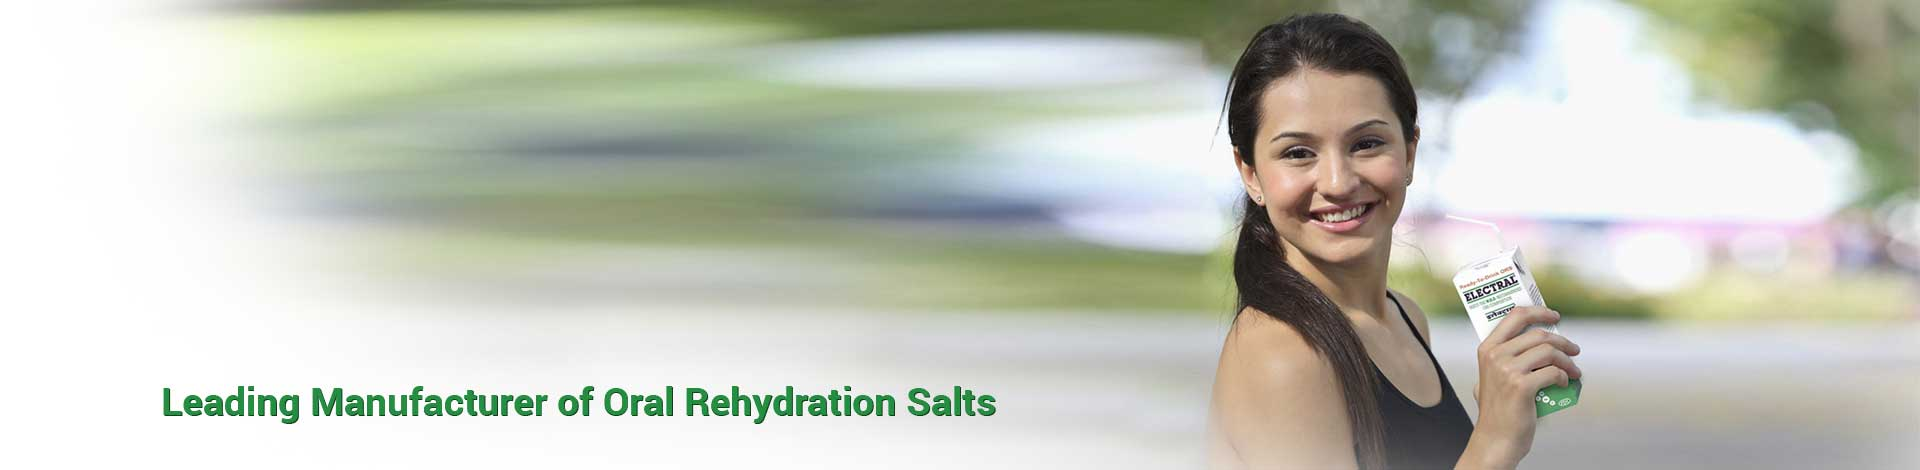 Leading Manufacturer of Oral Rehydration Salts